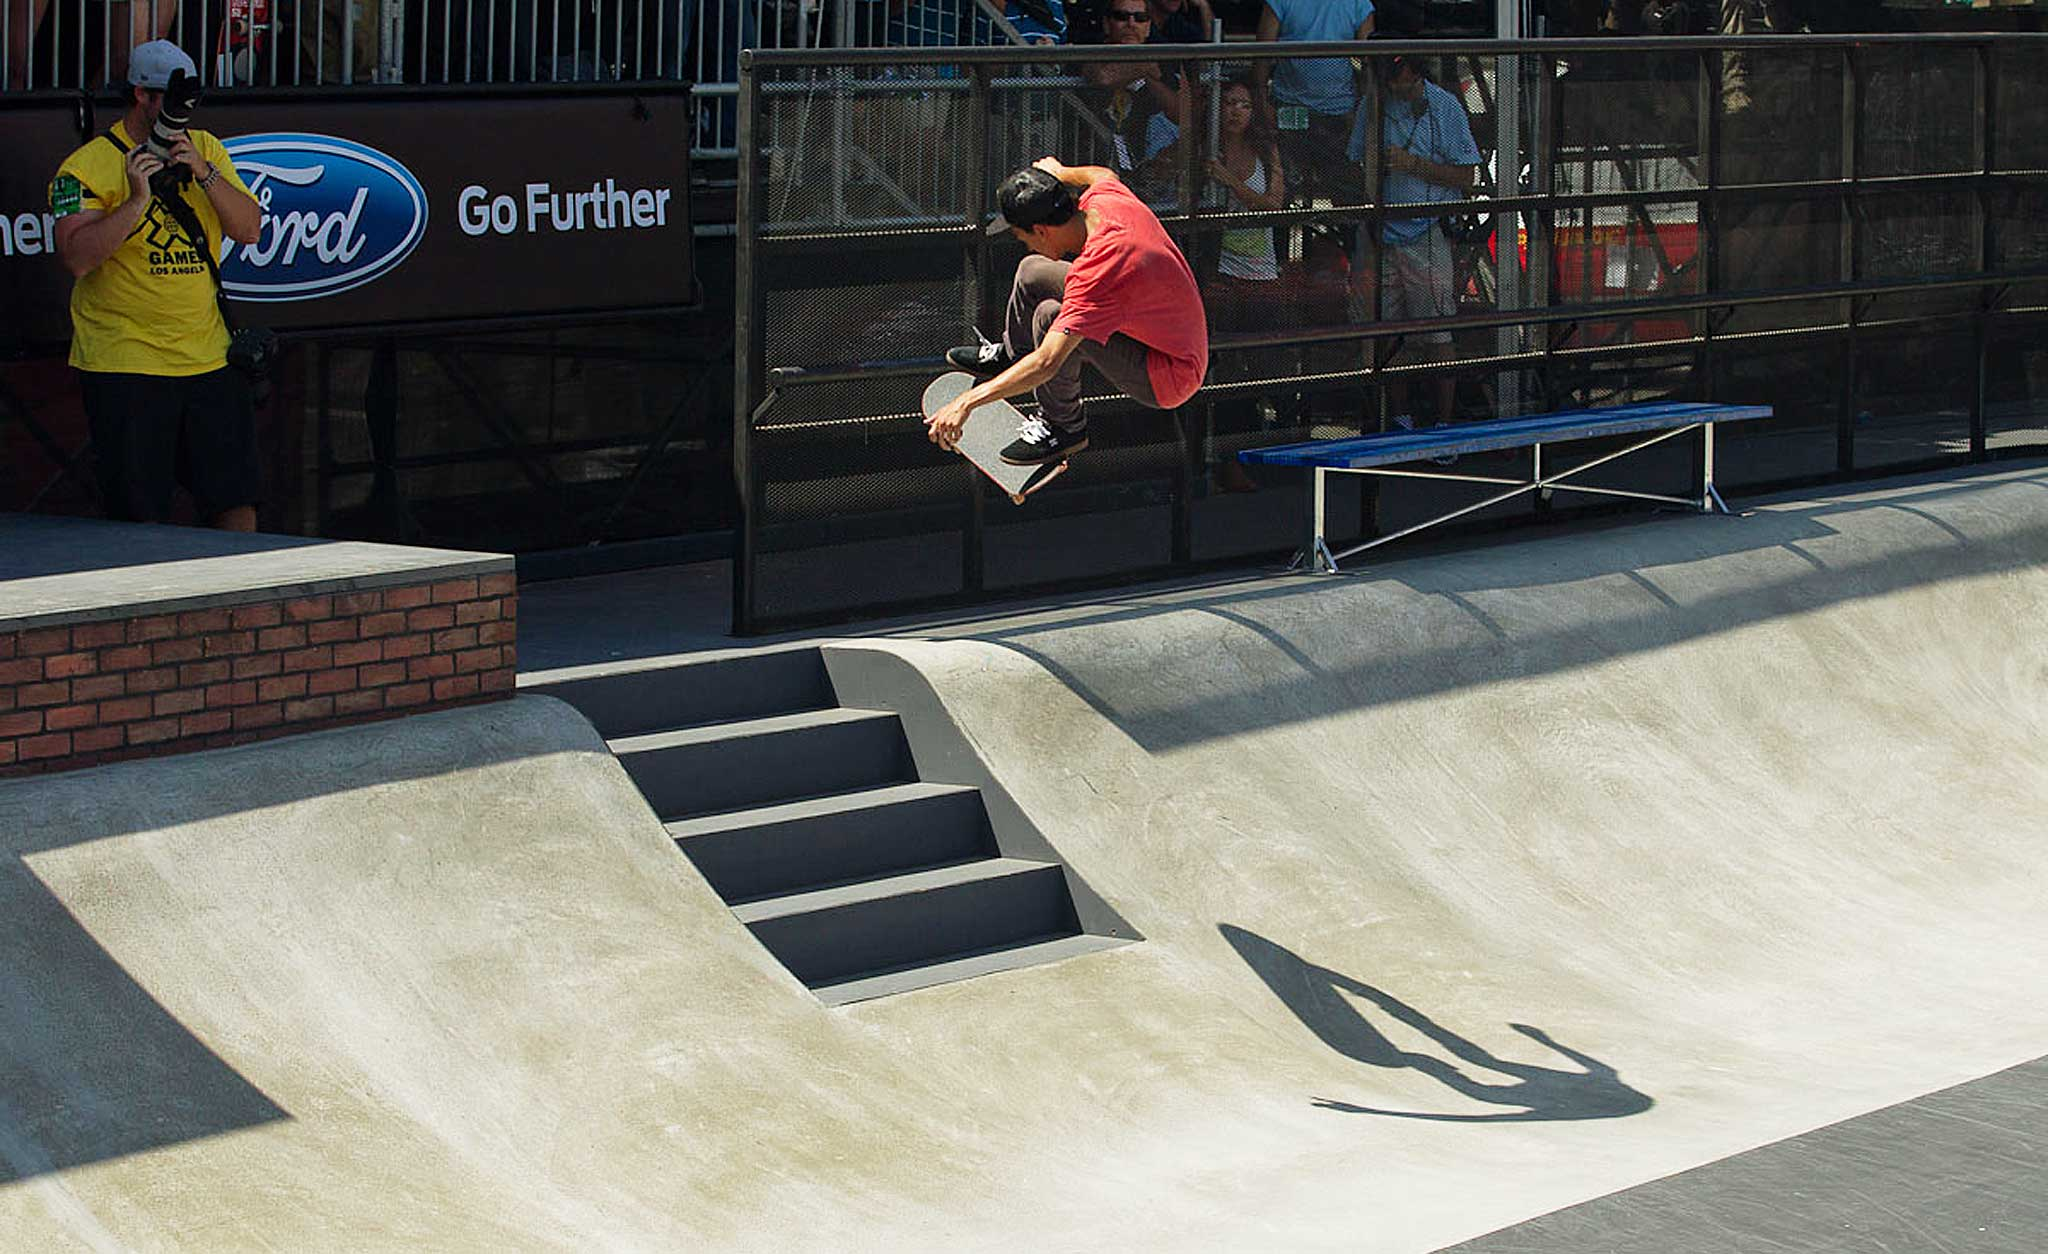 Though Huston took the Bronze at X Games Los Angeles earlier this year, he still topped the podium more times than not for 2012. Blind-sided kickflip to fakie over the stairs at the Los Angeles X Games.